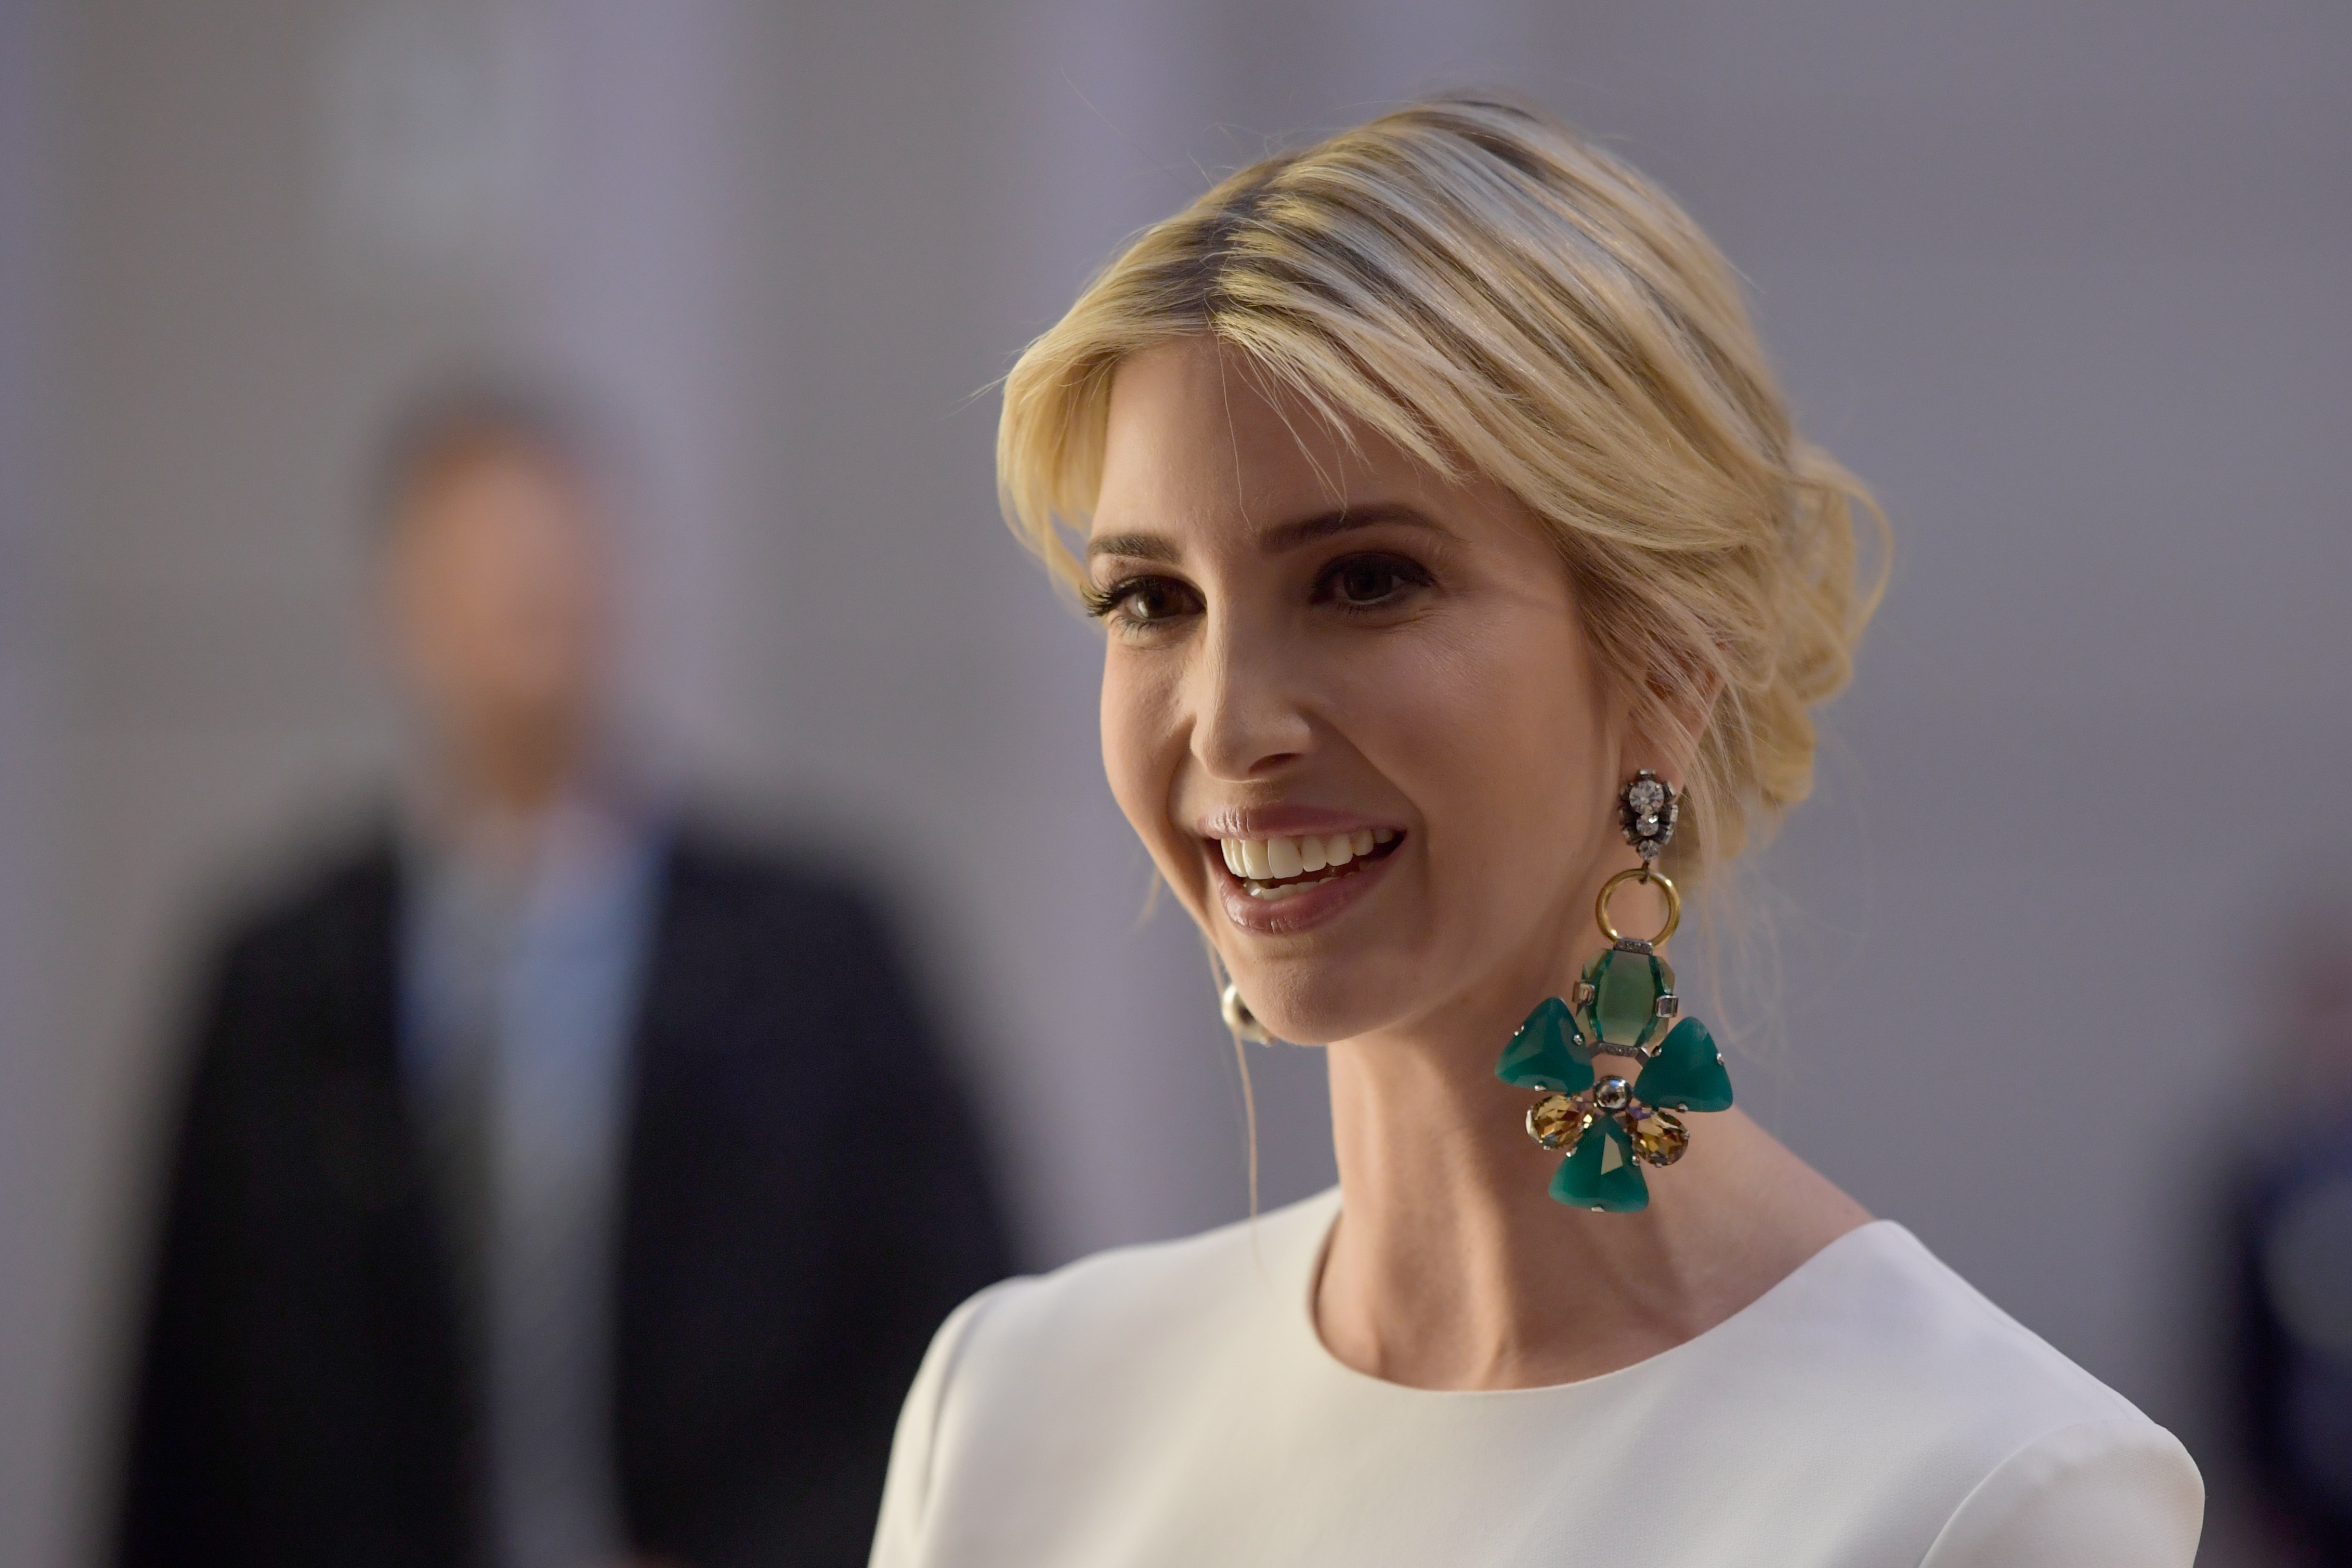 Ivanka Trump: Factory Used by Clothing Maker Has Violations